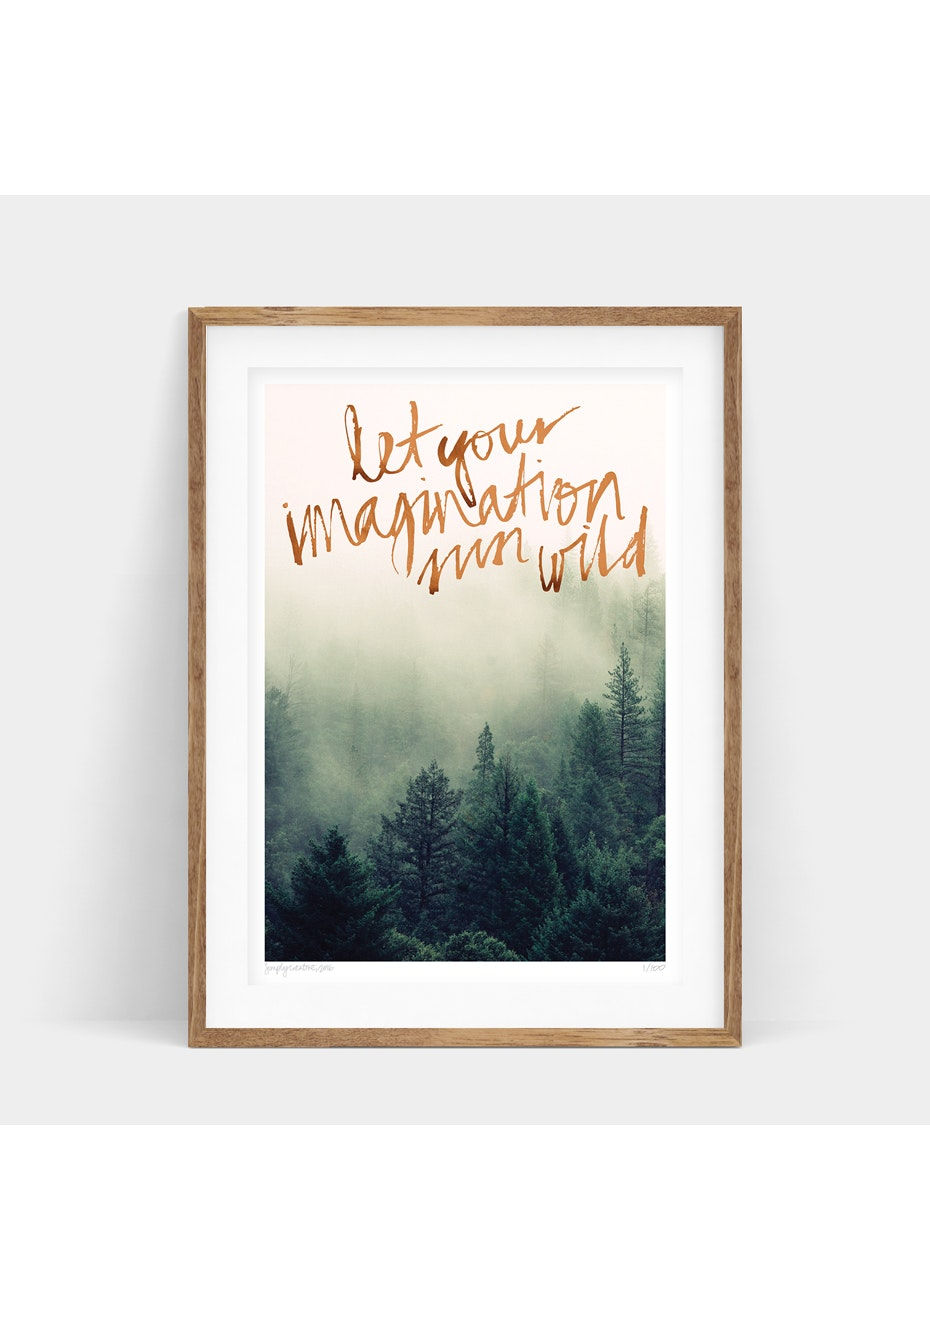 Simply Creative - Pure Imagination - A3 Copper Foil Limited Edition  Print